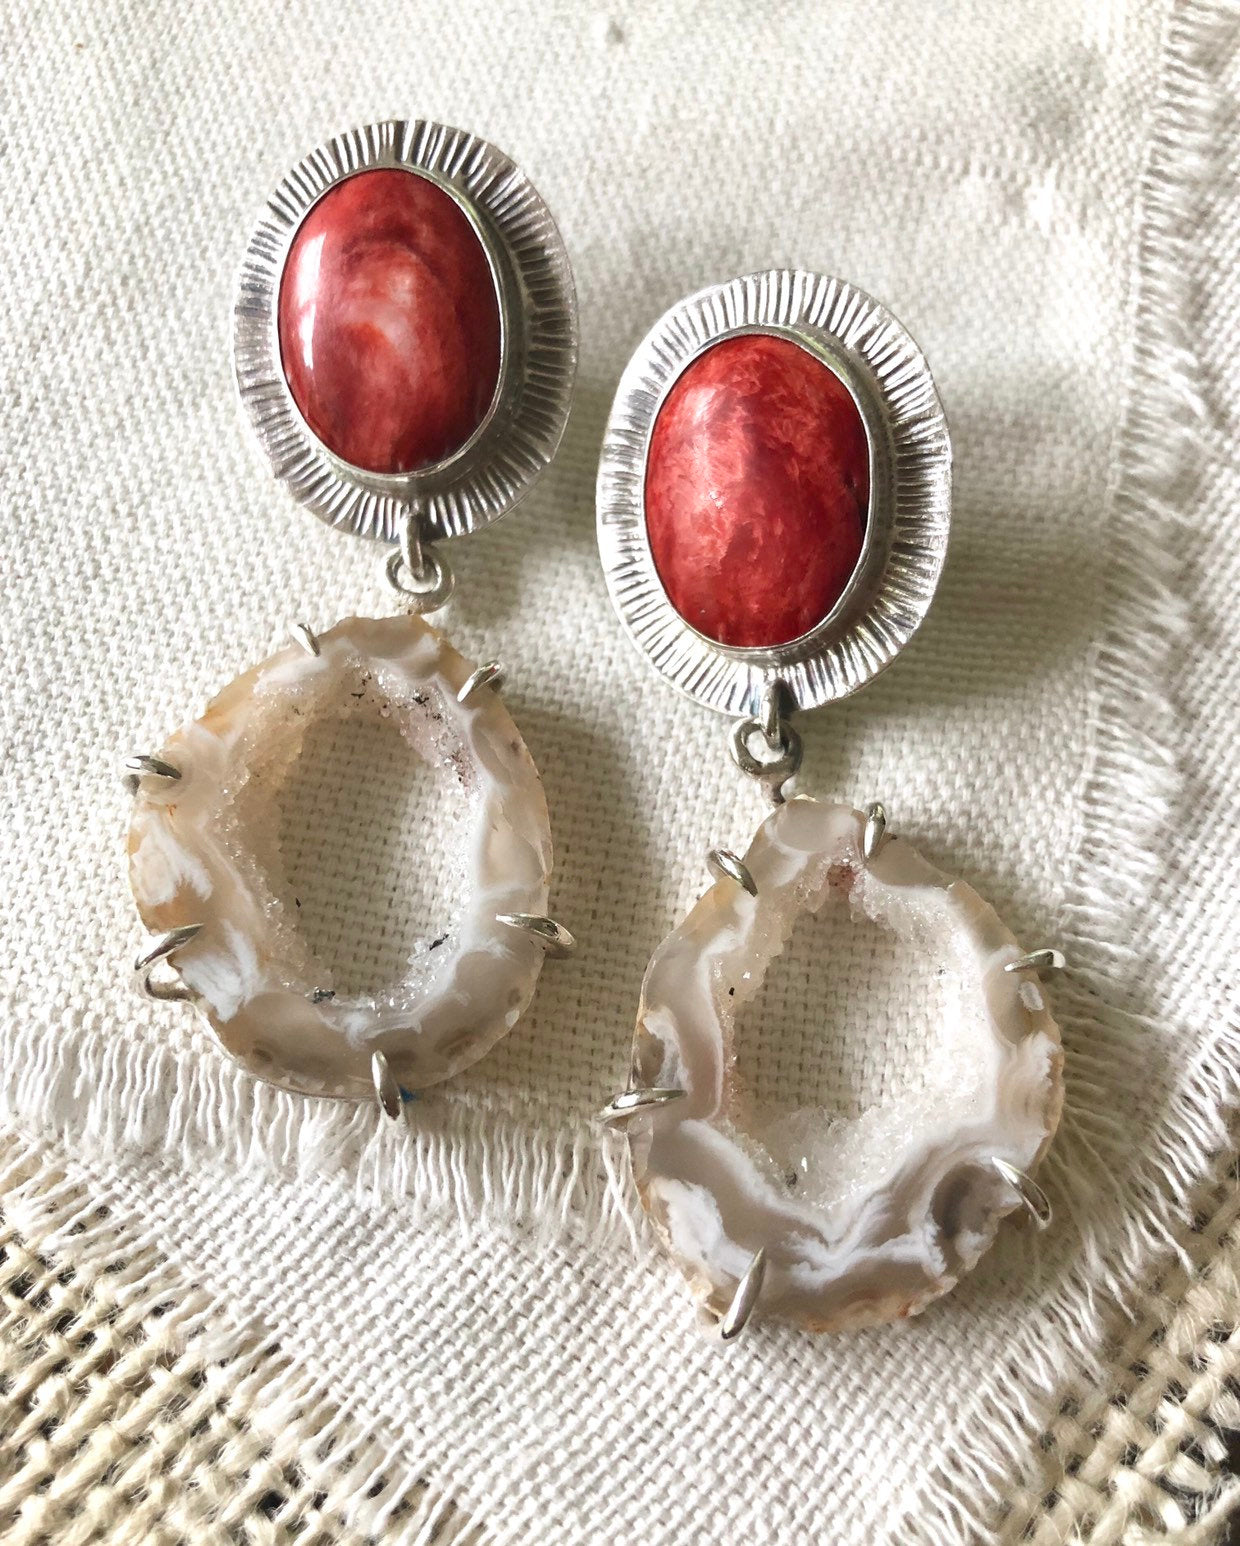 Geode Earrings, Spiny Oyster Earrings, Spiny Oyster Jewelry, Oco Geode Earrings, Geode Jewelry, Statement Earrings, Geodes, Spiny Oyster